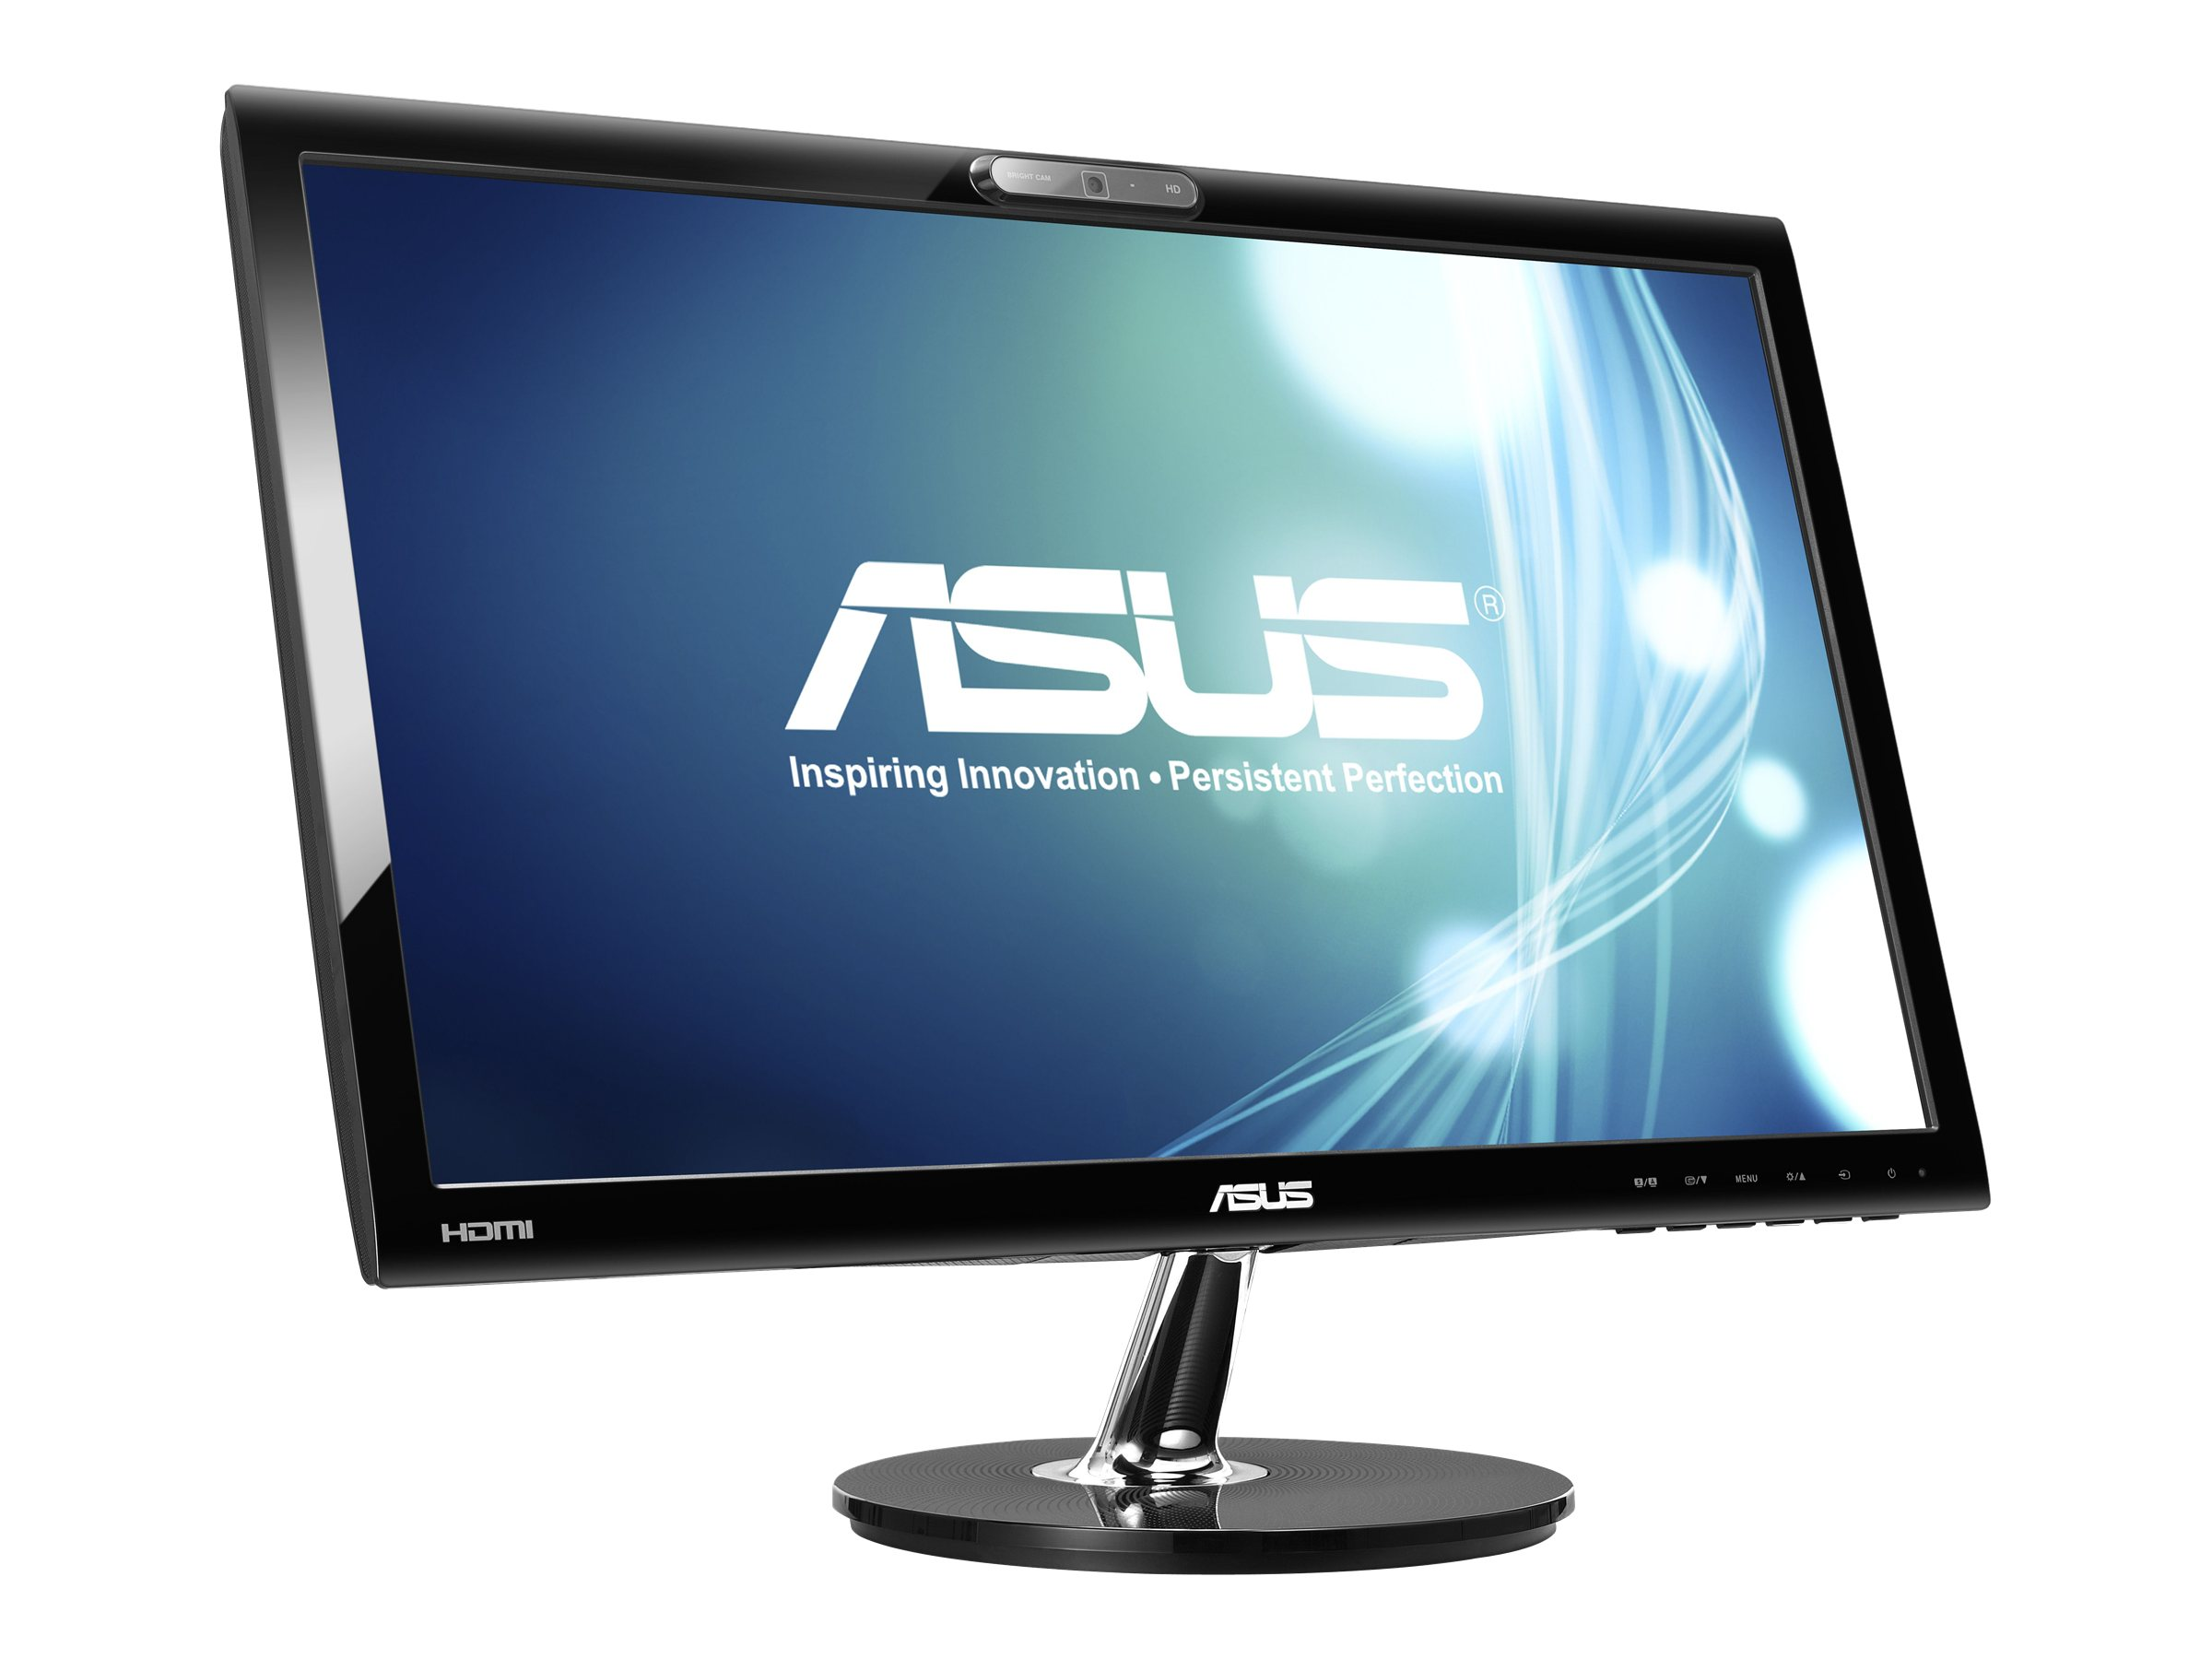 Asus 22 VK228H-CSM LED-LCD Full HD Monitor with Webcam, Black, VK228H-CSM